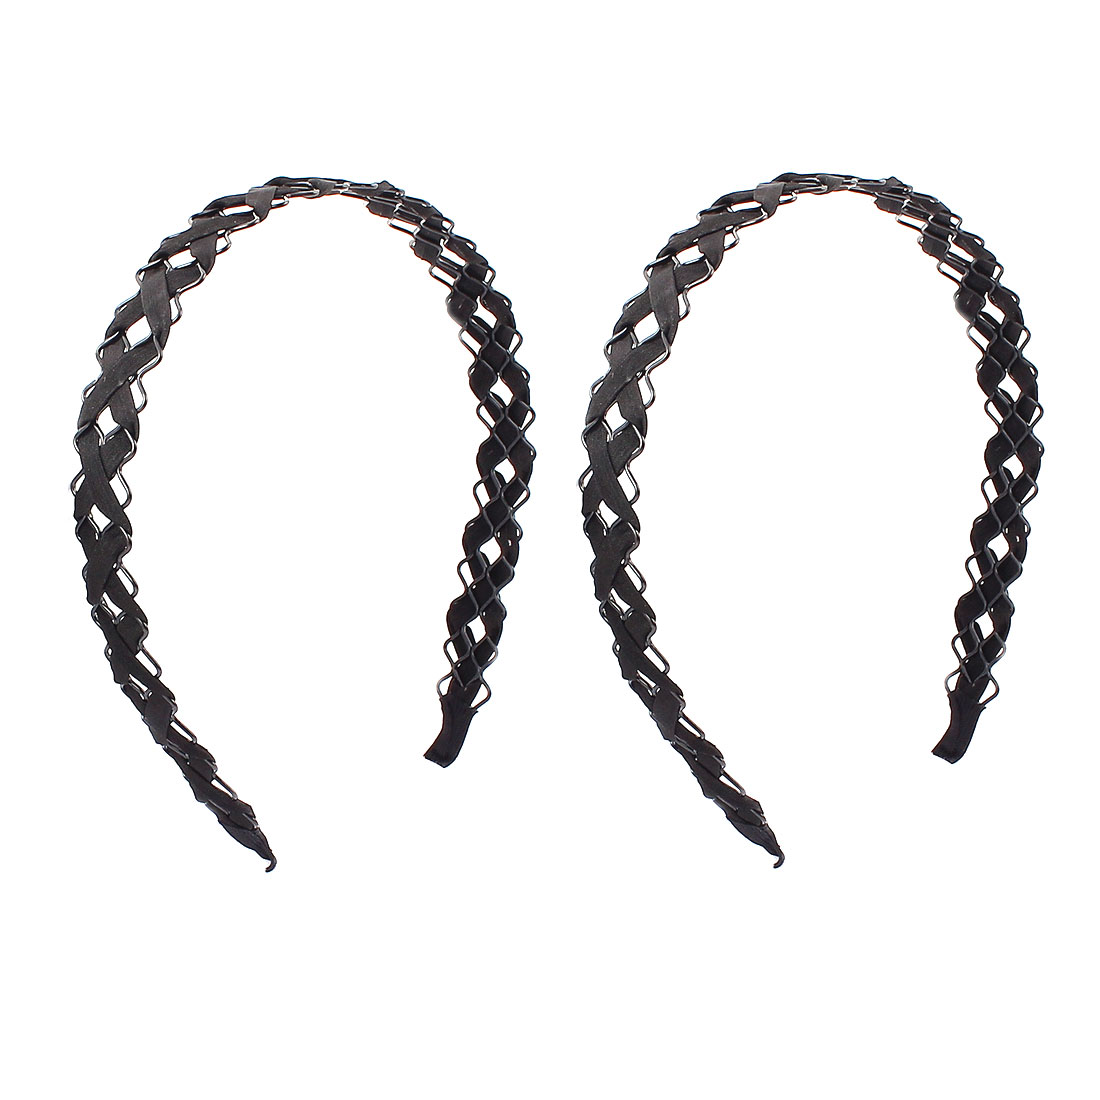 Black Cloth Braided Wave Hairband Hair Hoop Headband Decor 2 PCS